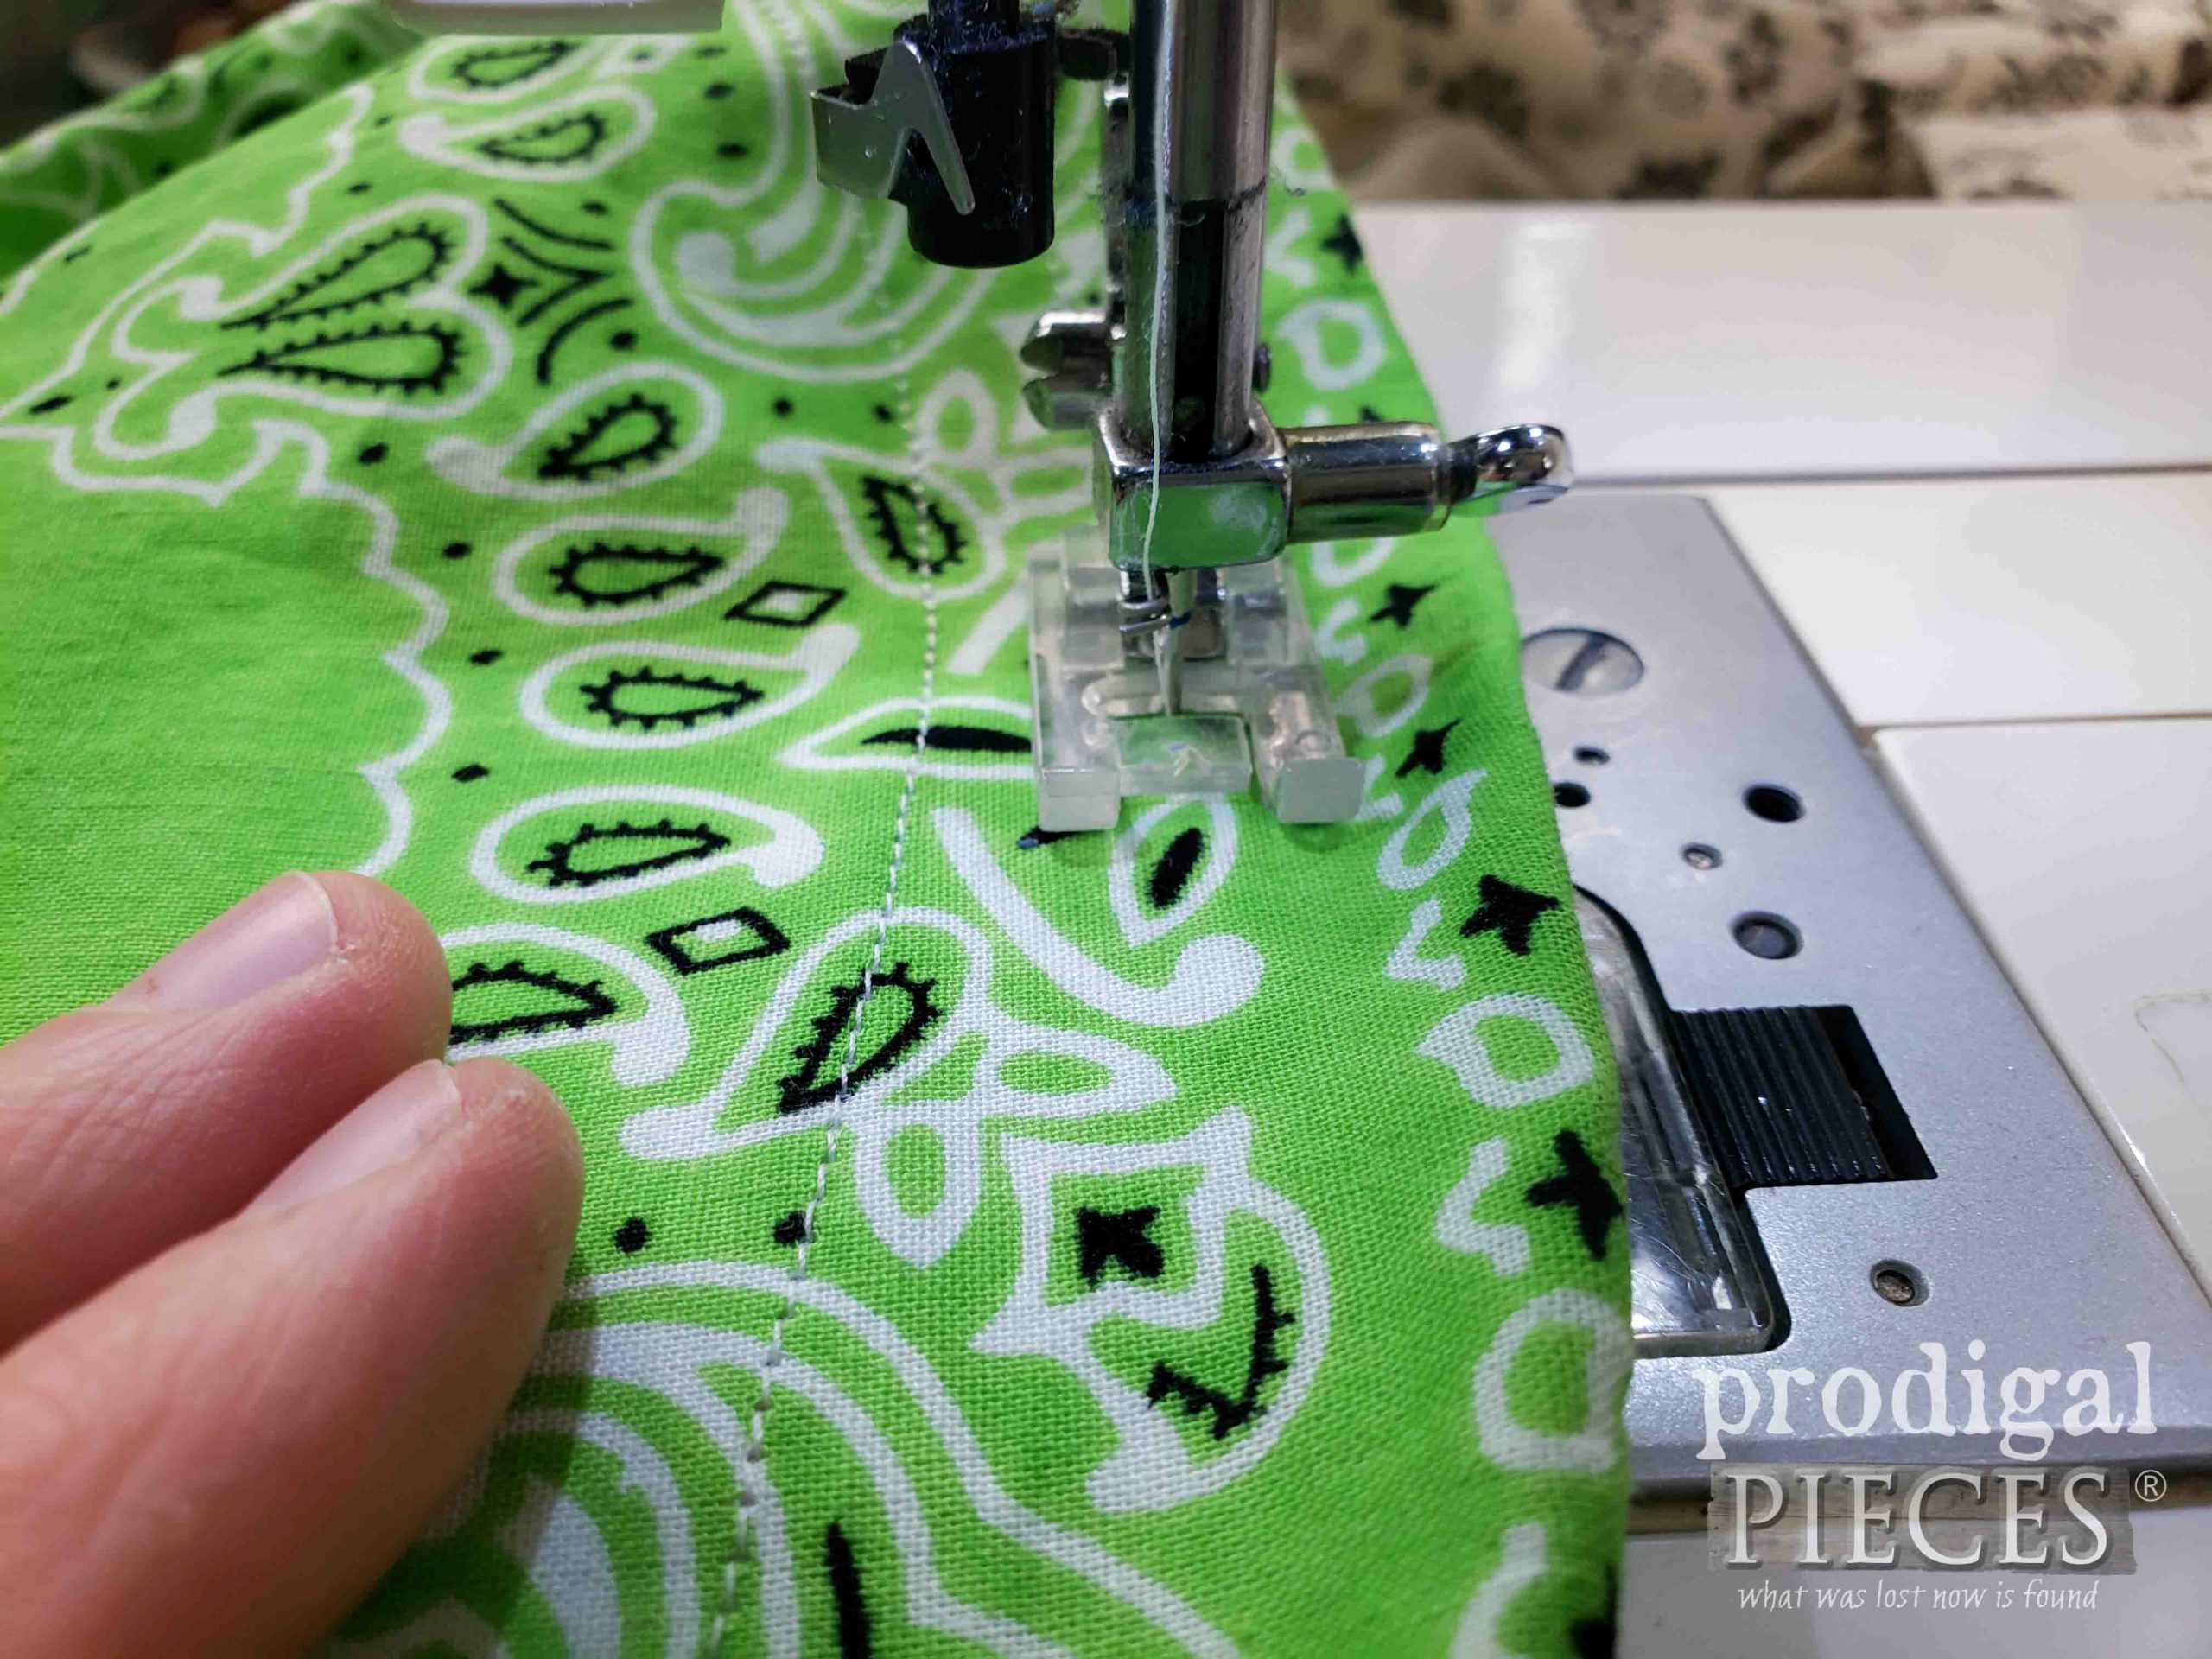 Sewing Casing for Drawstring Bag by Prodigal Pieces   prodigalpieces.com